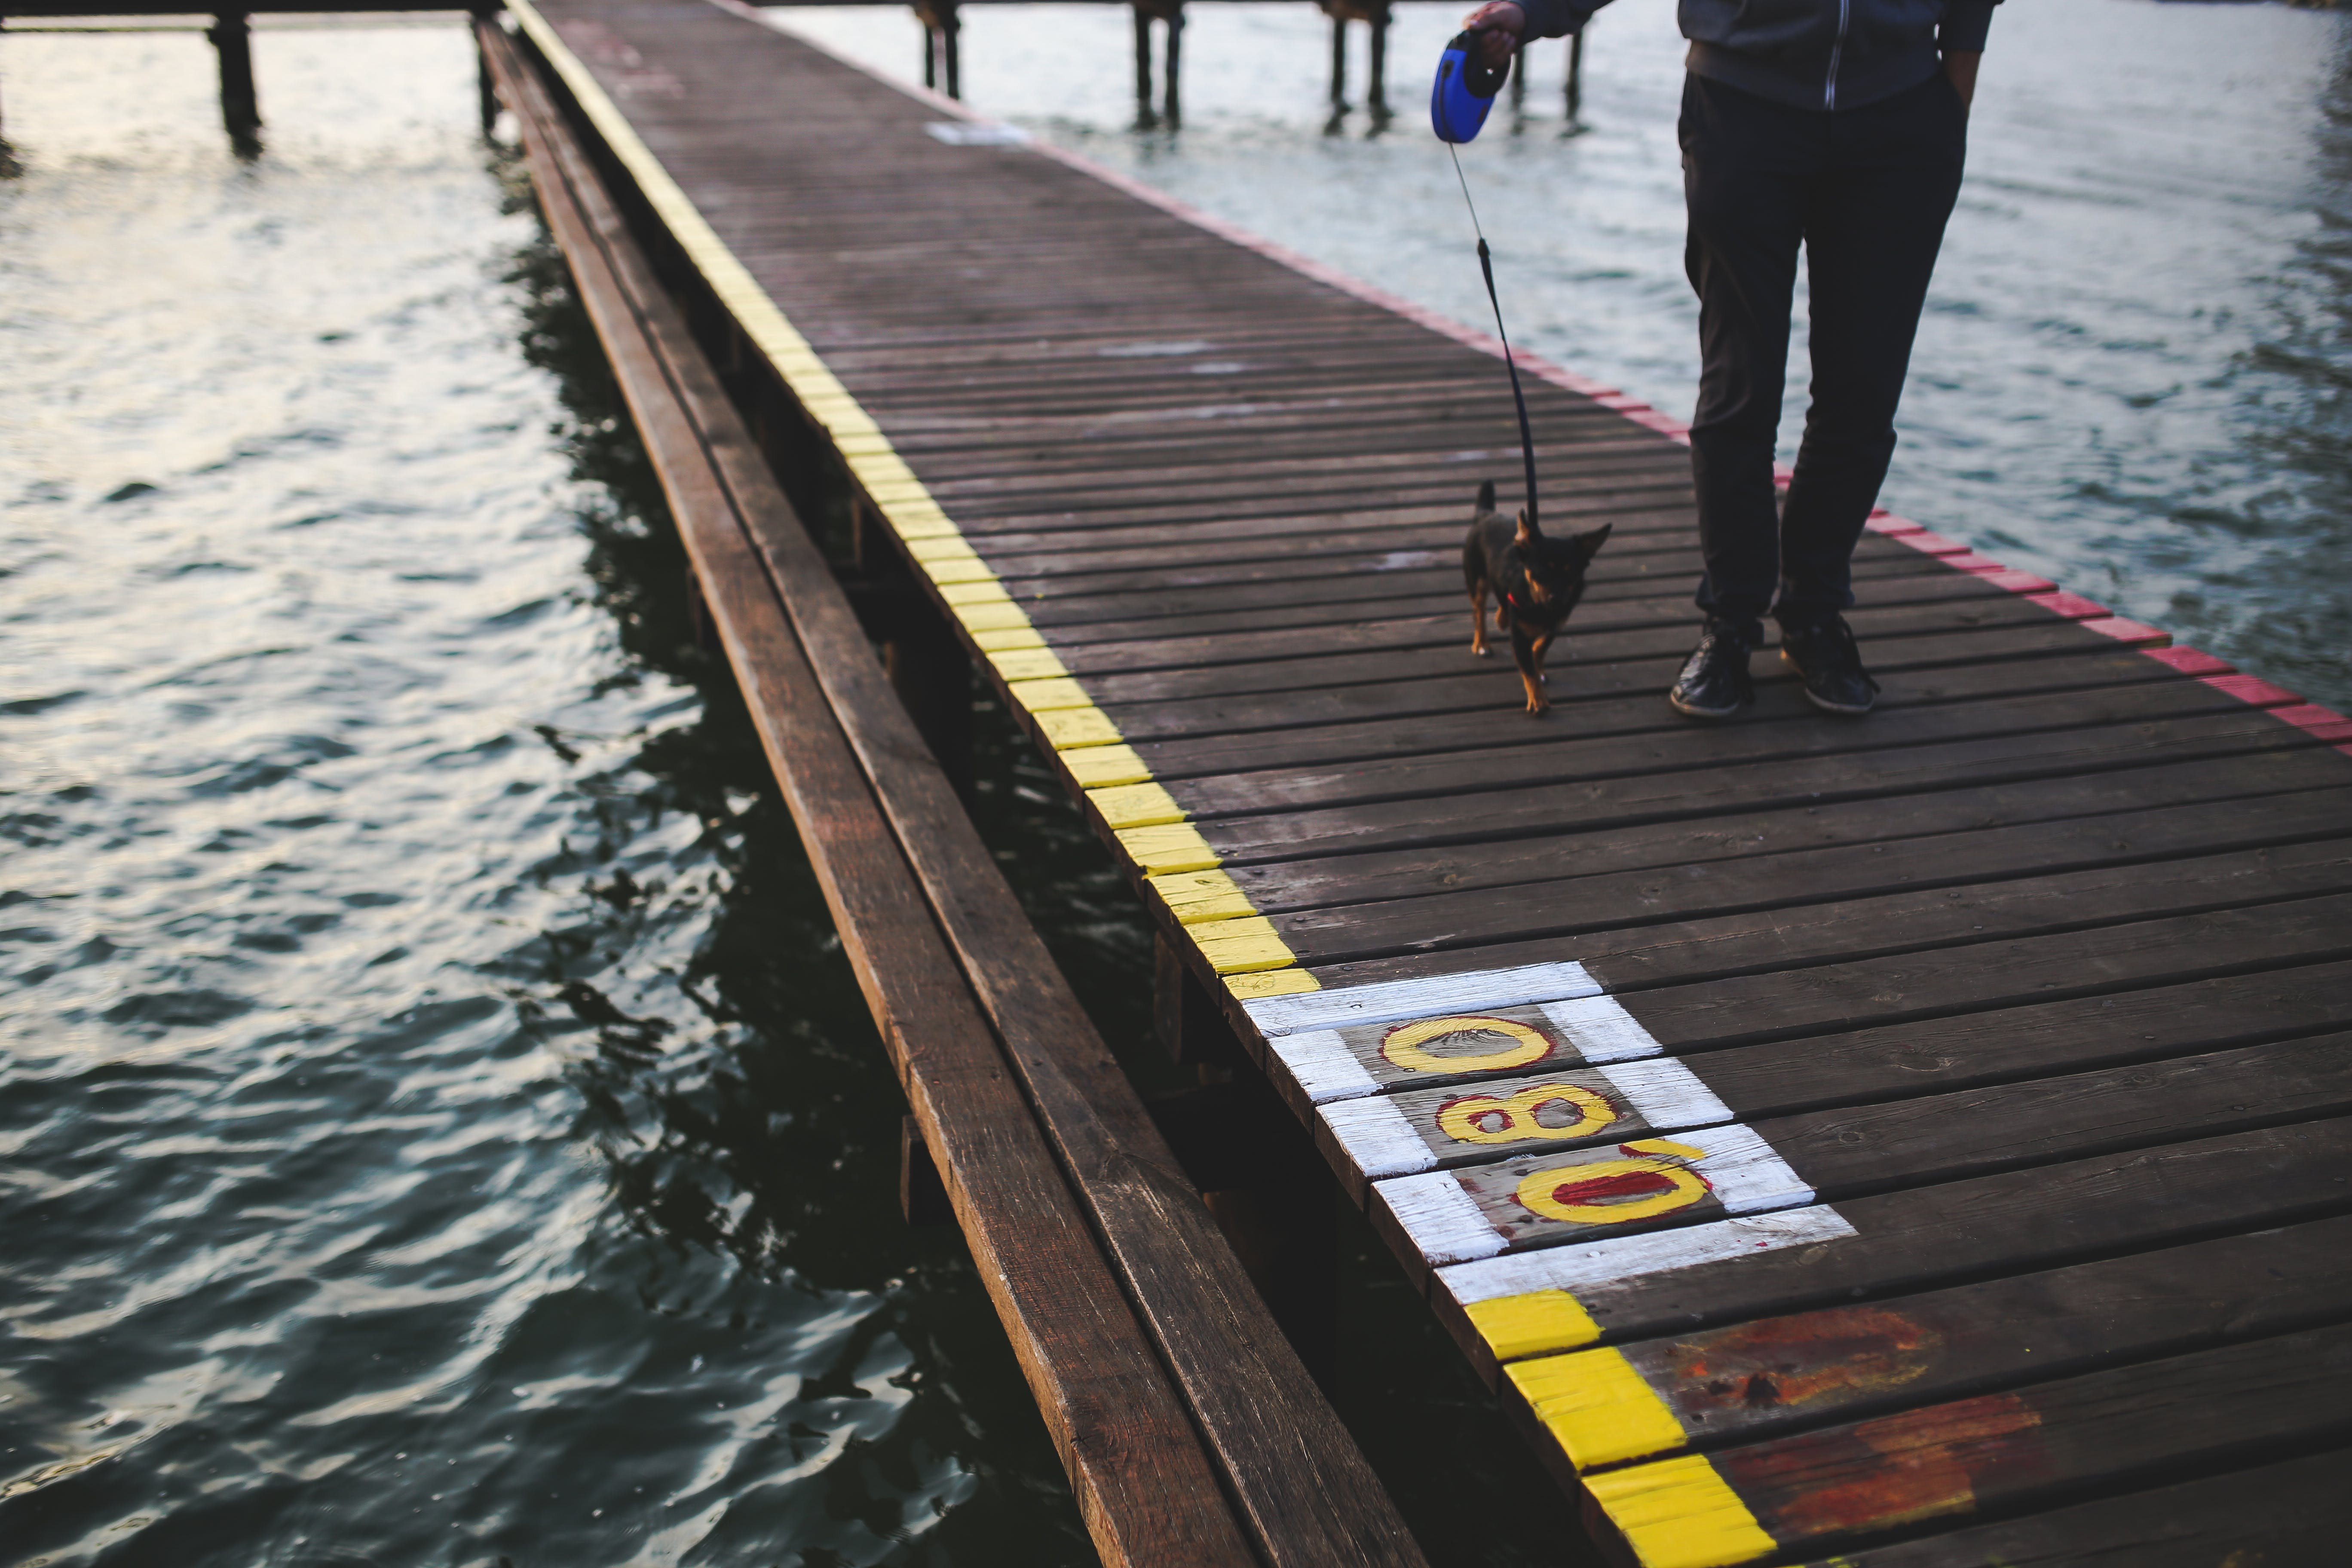 Evening walk with the dog along the pier